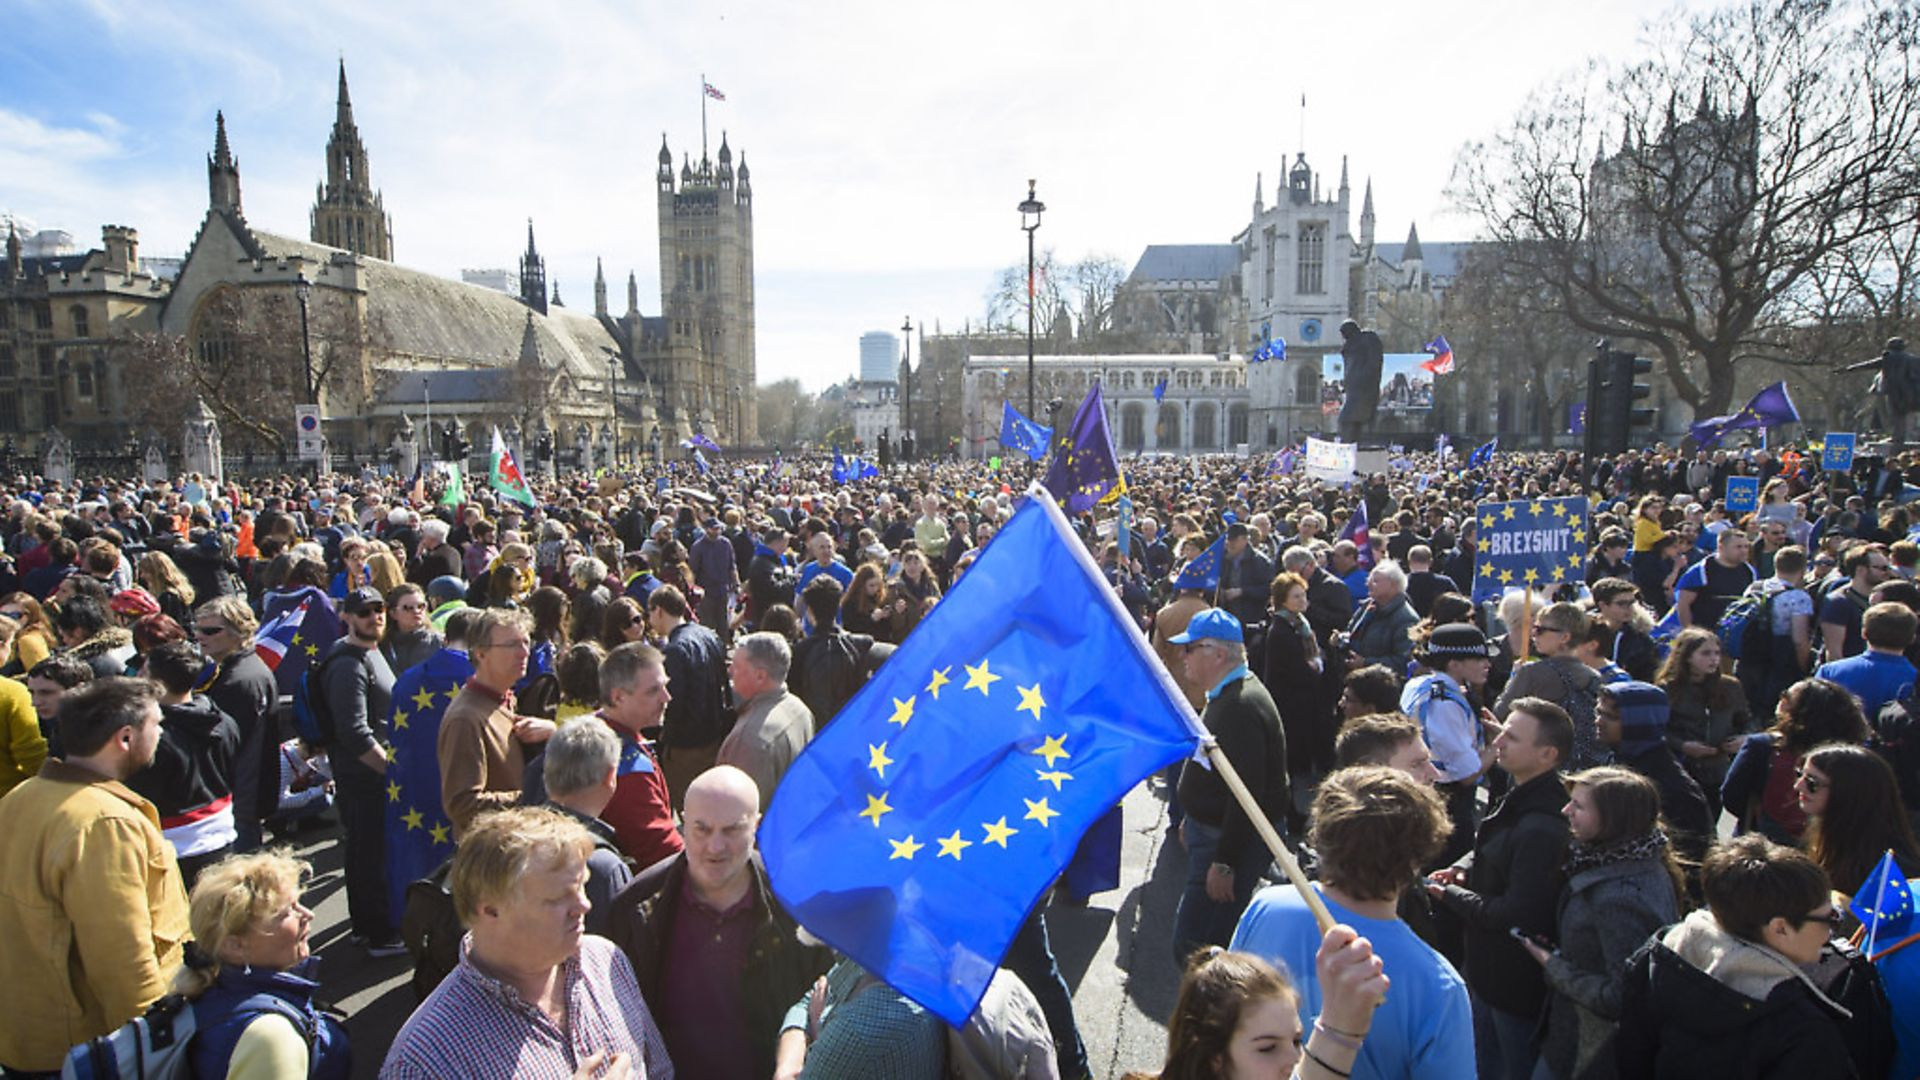 Remainers at a March for Europe event. Photograph: Matt Crossick/ EMPICS Entertainment. - Credit: Empics Entertainment